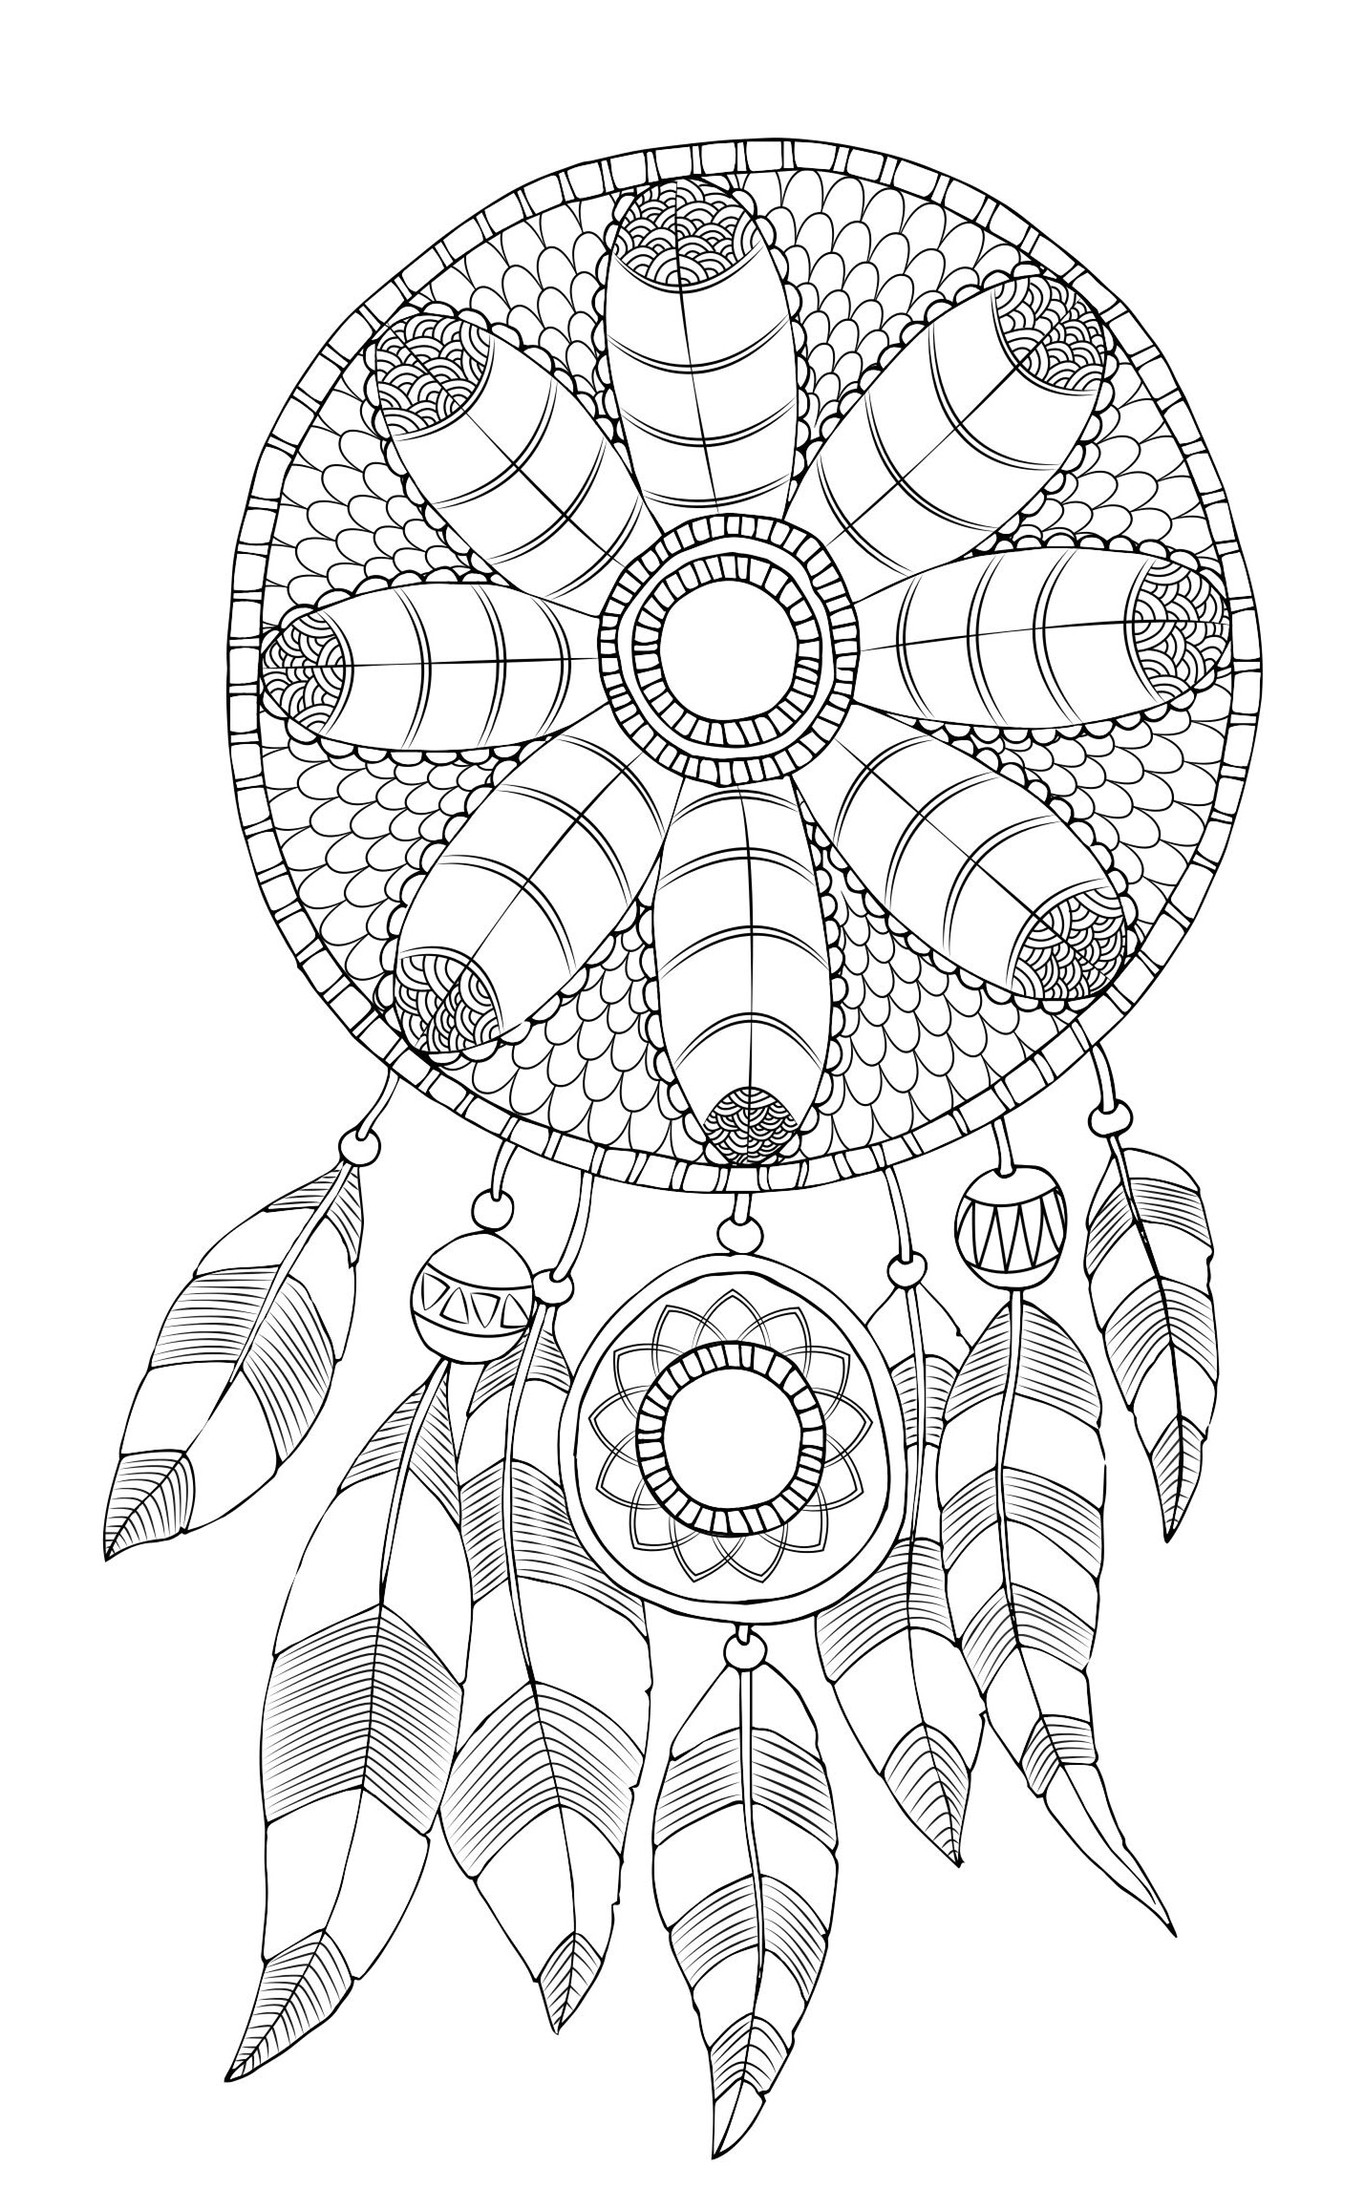 Dreamcatcher Printable Coloring Pages  Free Adult Coloring Page Dreamcatcher Printable Free